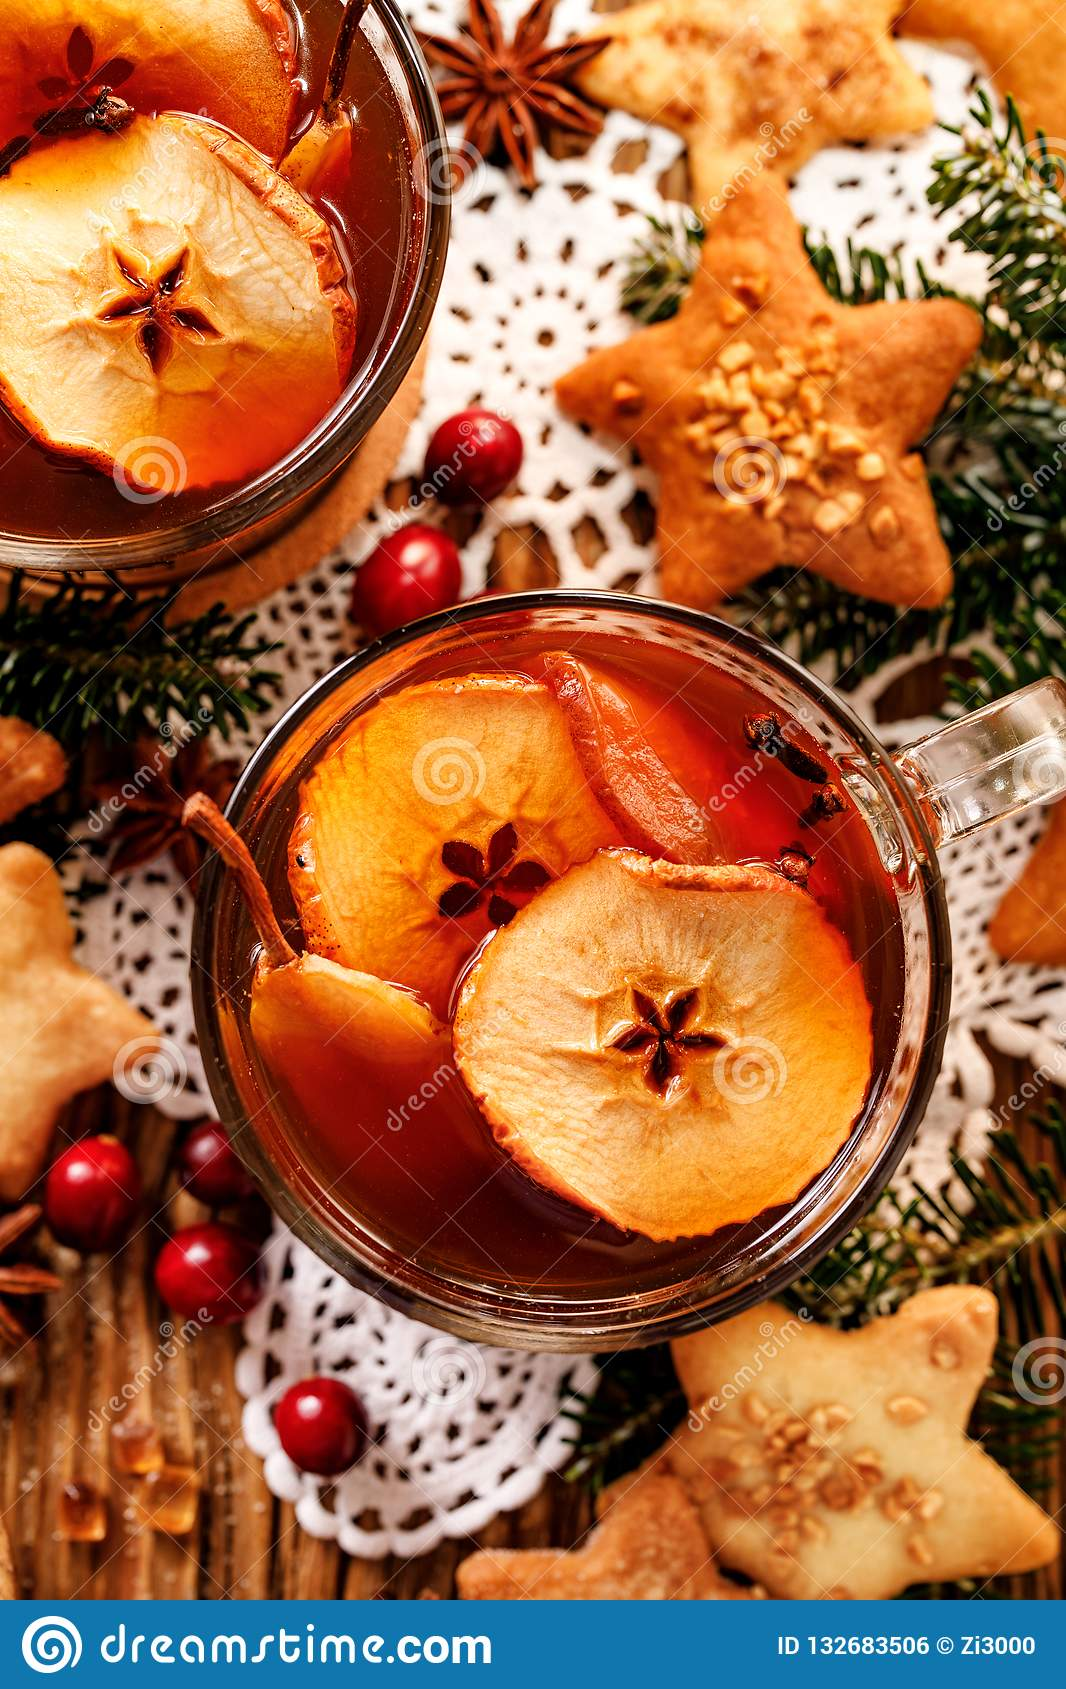 Compote of dried fruits and aromatic spices, a traditional drink during Christmas dinner. Traditional Polish Christmas